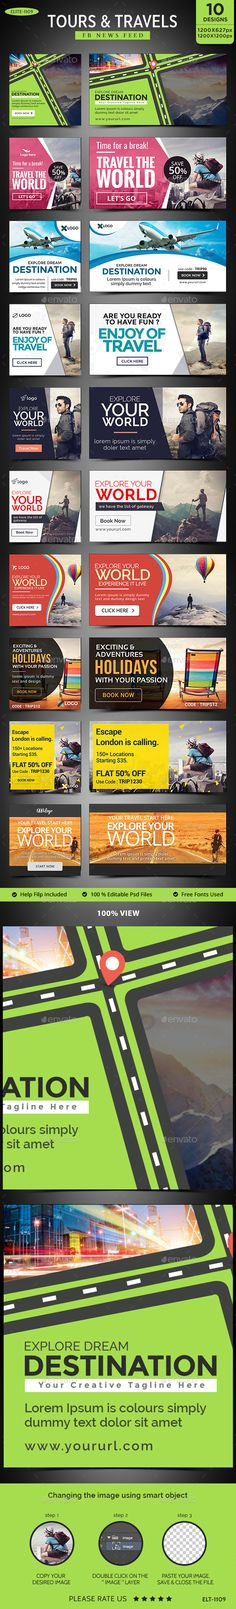 10 Tours & Travels Facebook News Feed Banner Images Template - Download Here : http://graphicriver.net/item/tours-travels-facebook-news-feed-images-10-designs-2-sizes-each/14657886?ref=yinkira